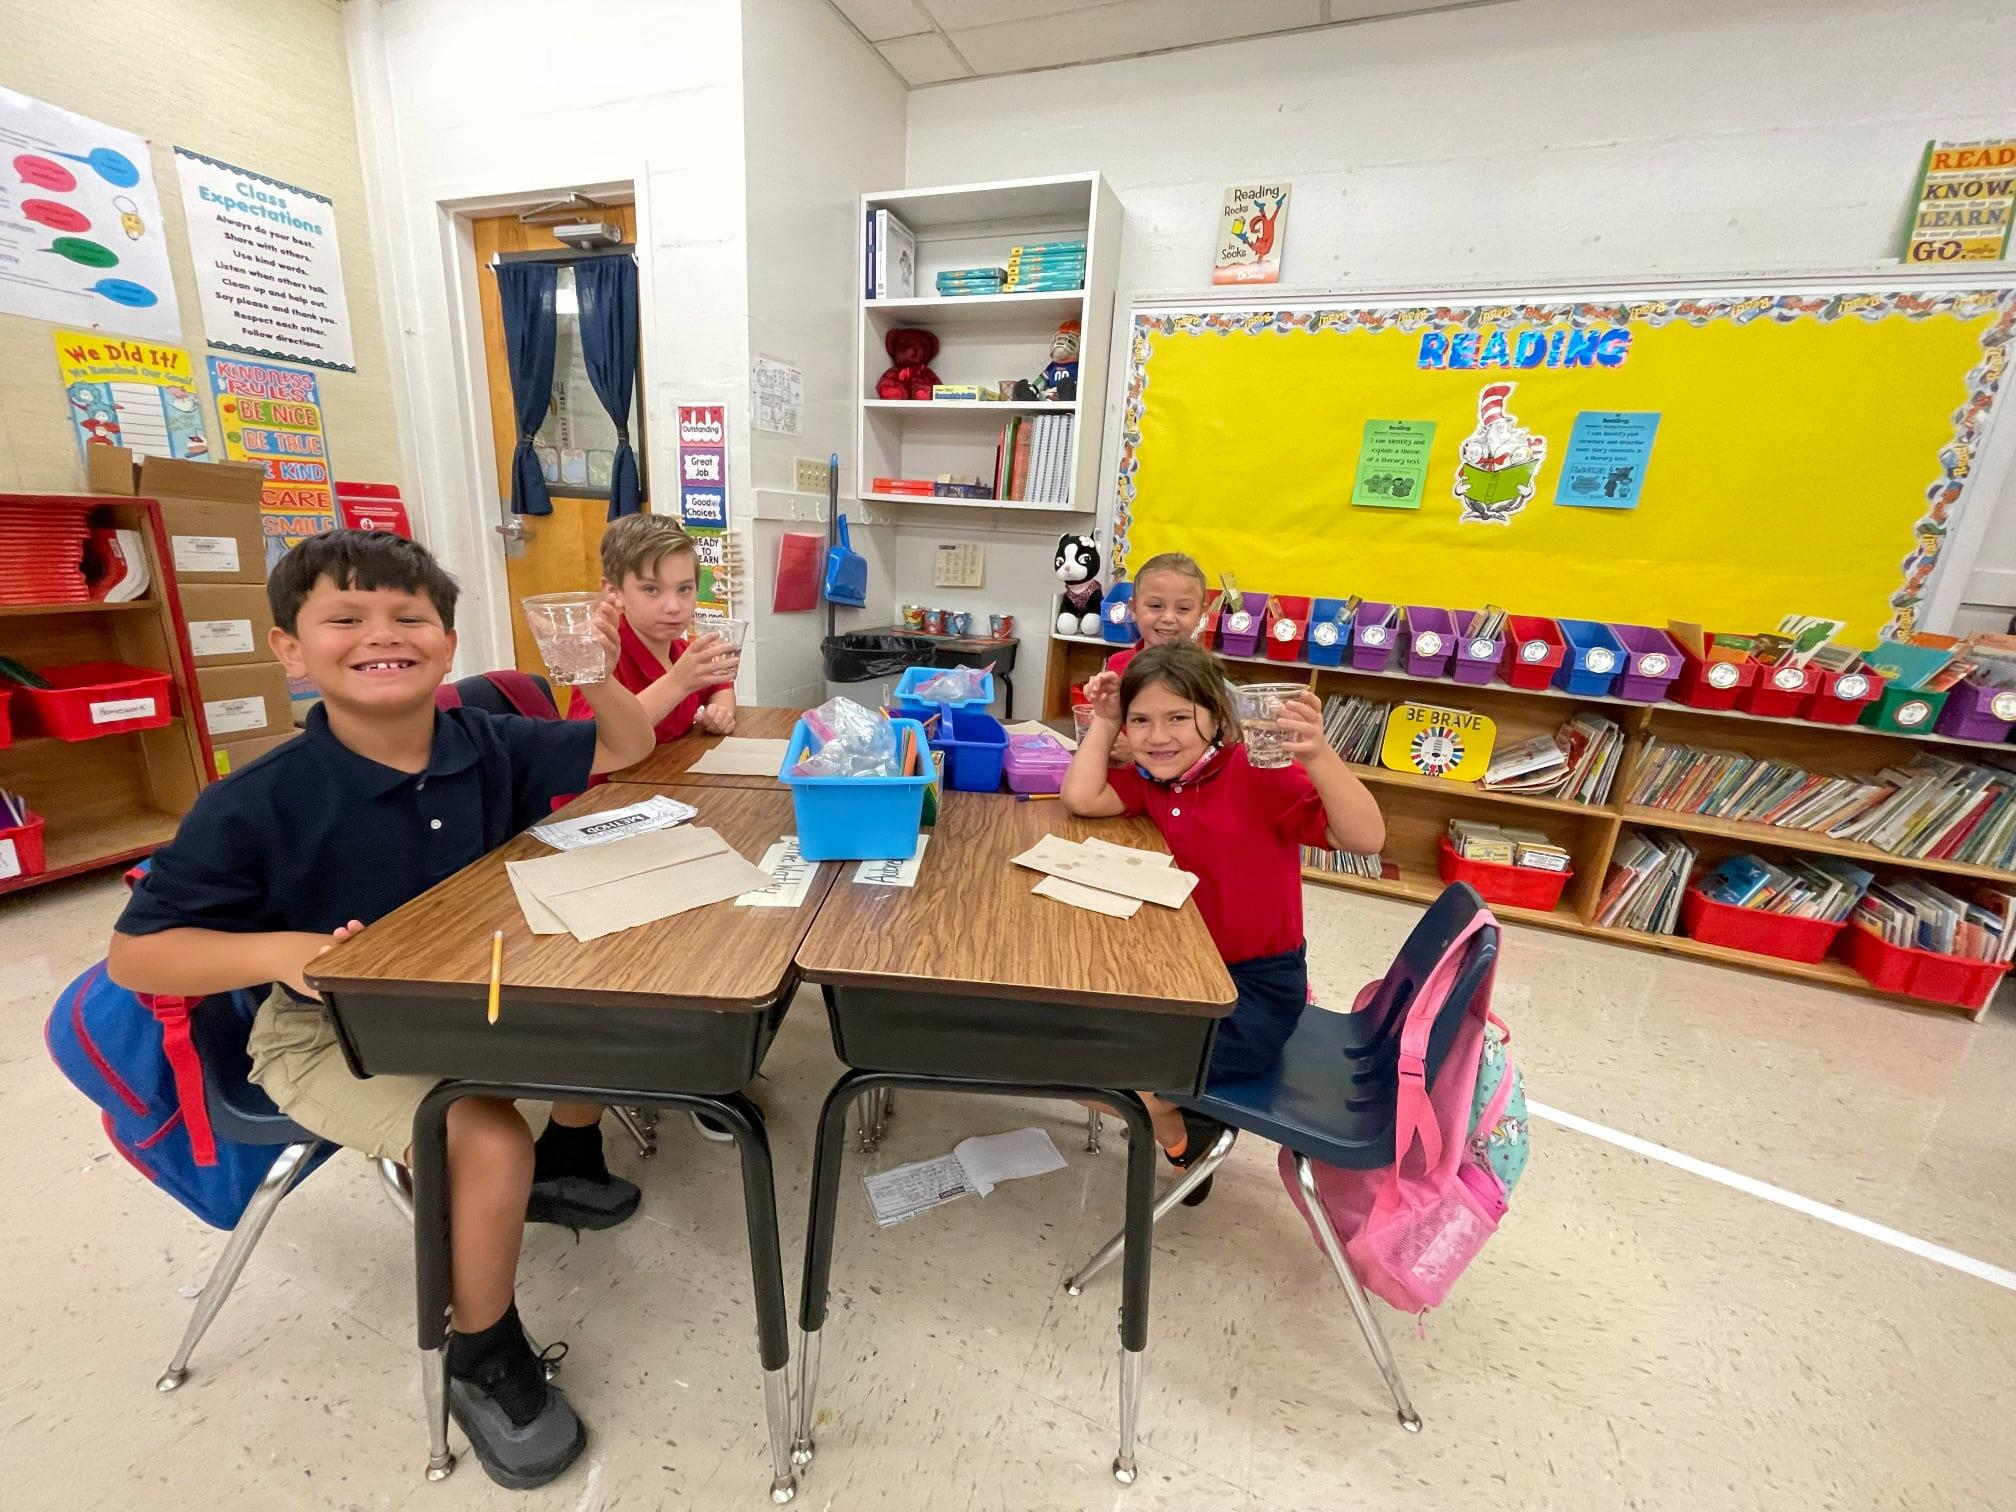 Students at Padgett Elementary